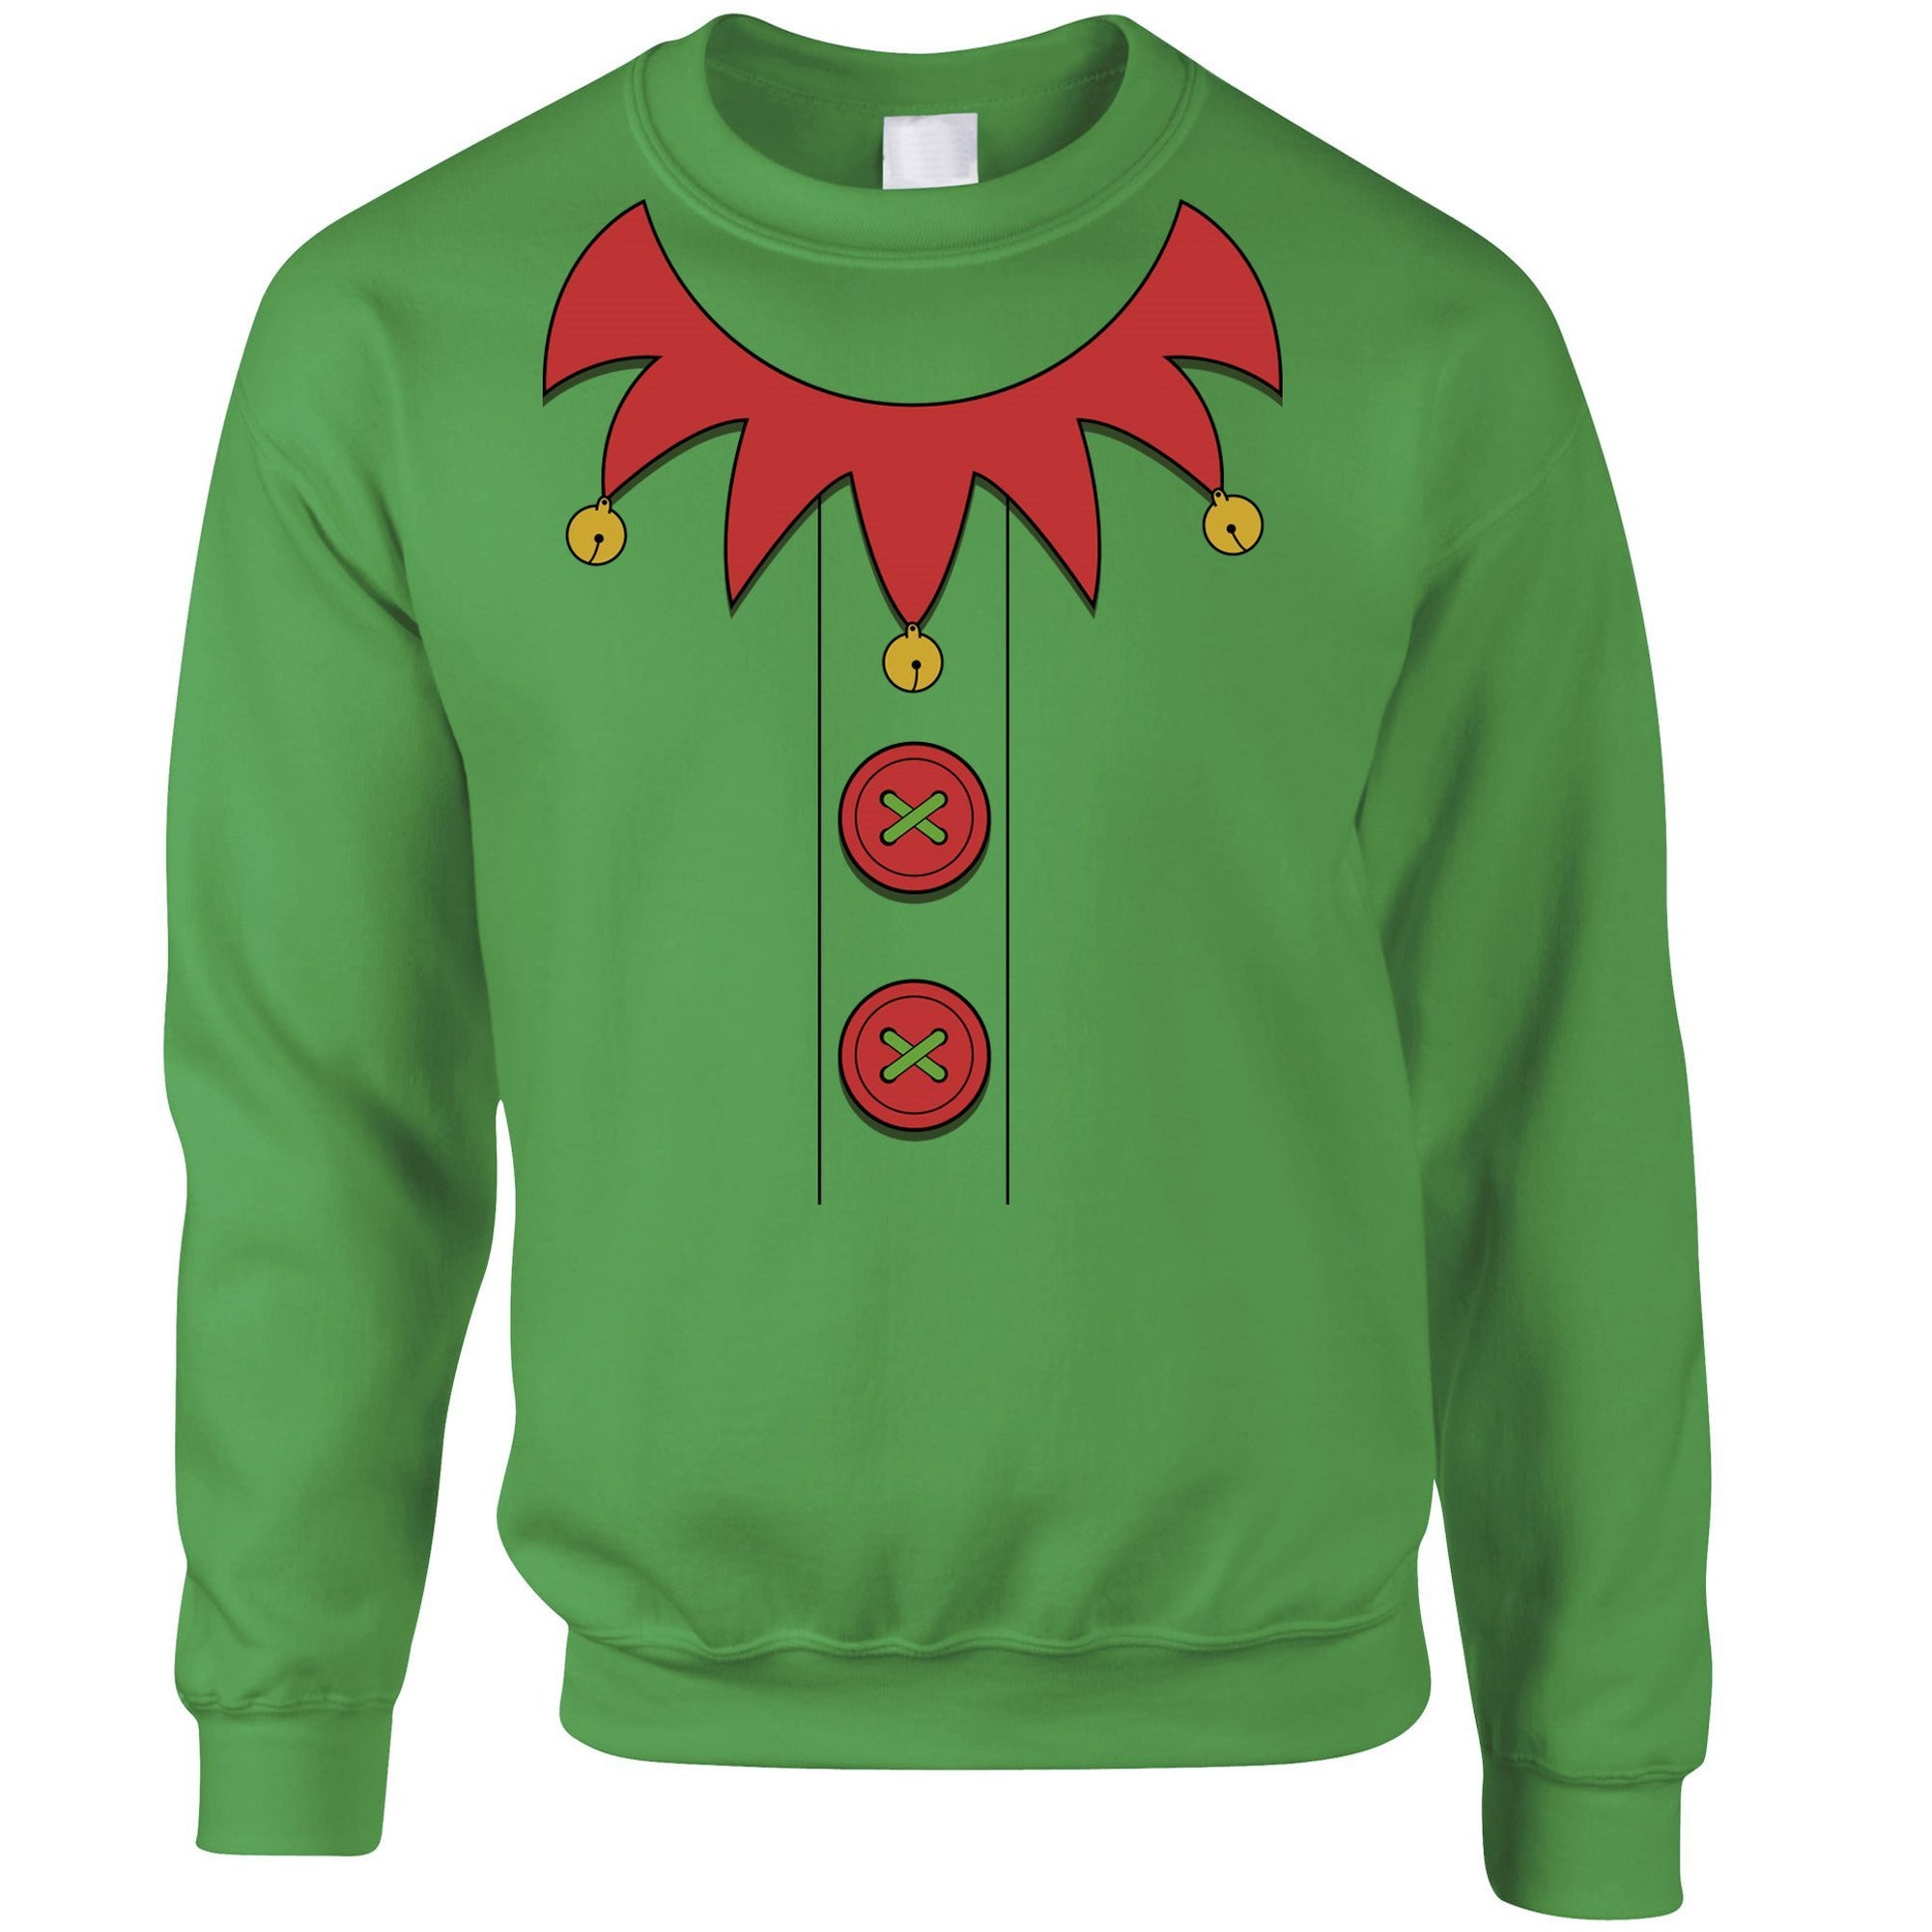 Novelty Christmas Jumper Festive Elf Party Costume Sweatshirt Sweater